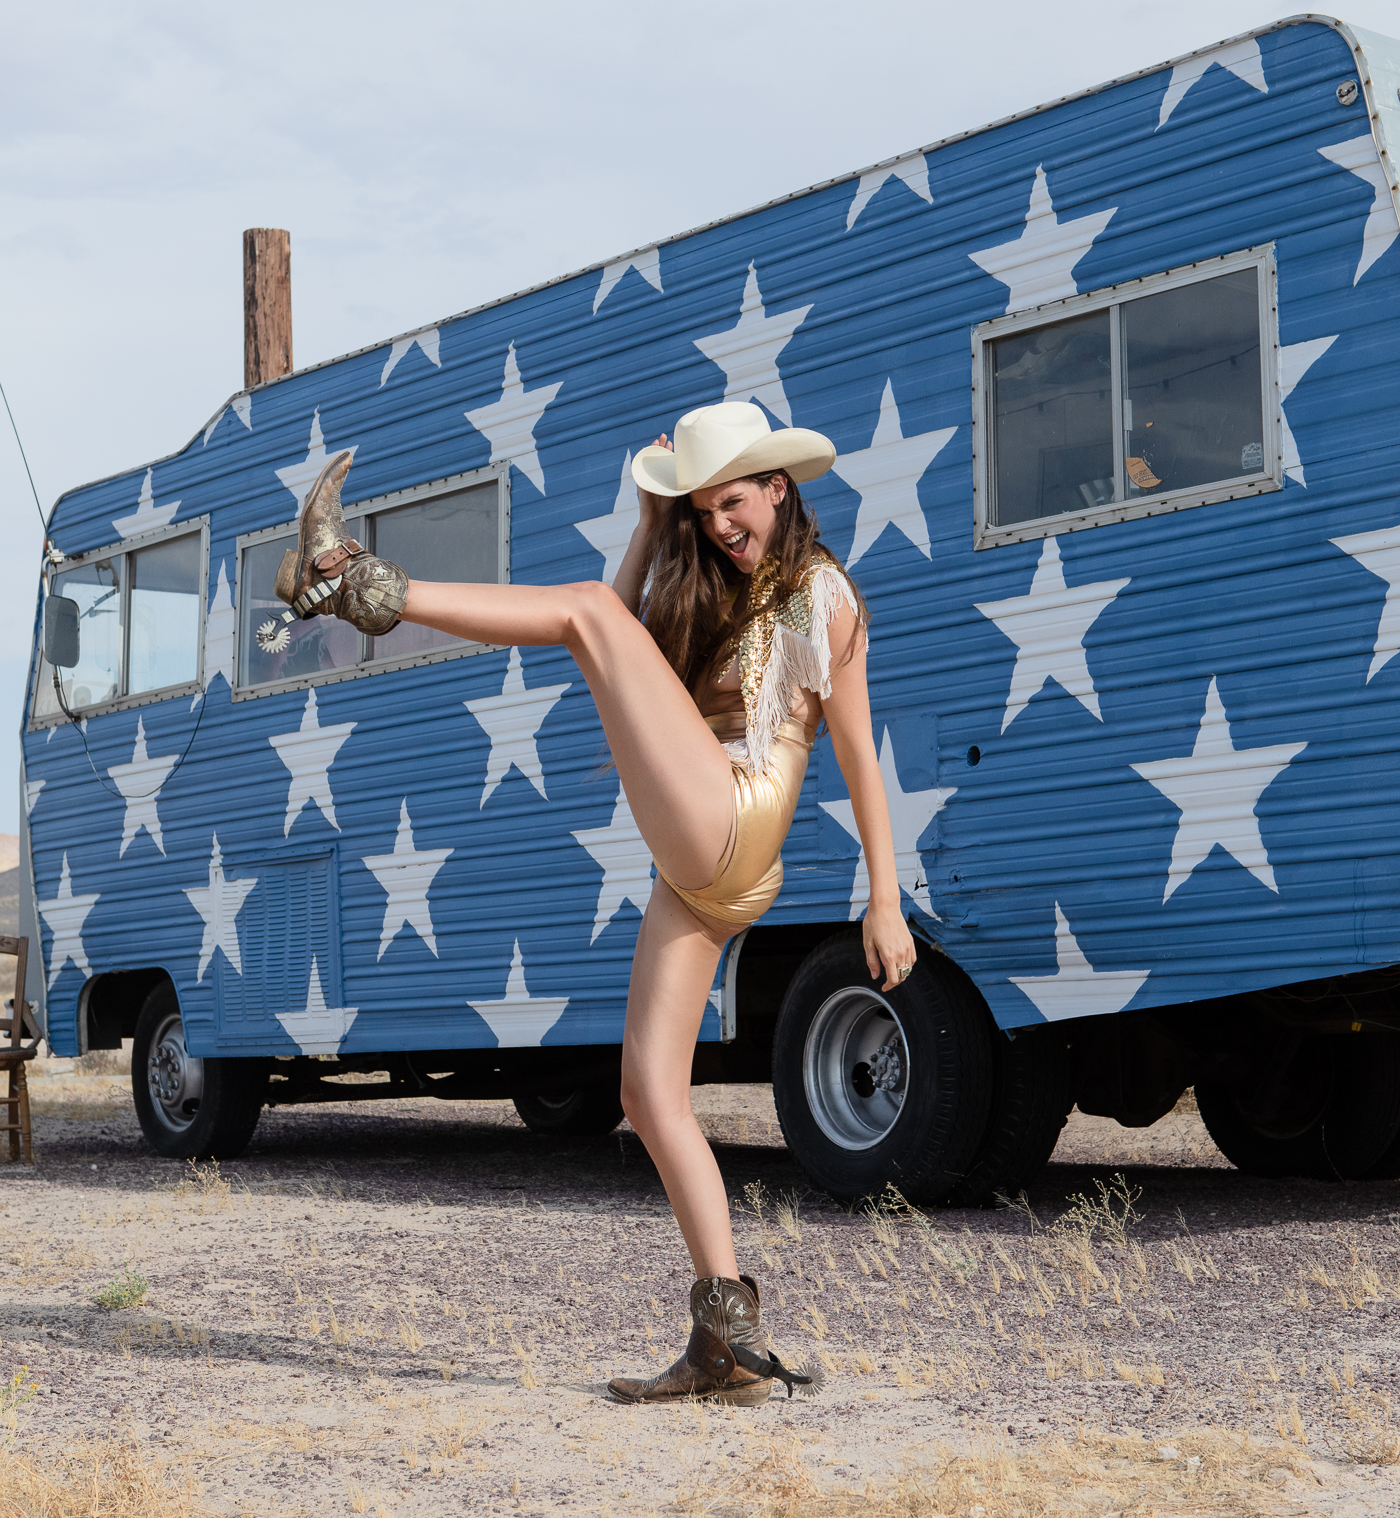 Americana space cowgirl editorial by Los Angeles fashion photographer Heather Van Gaale